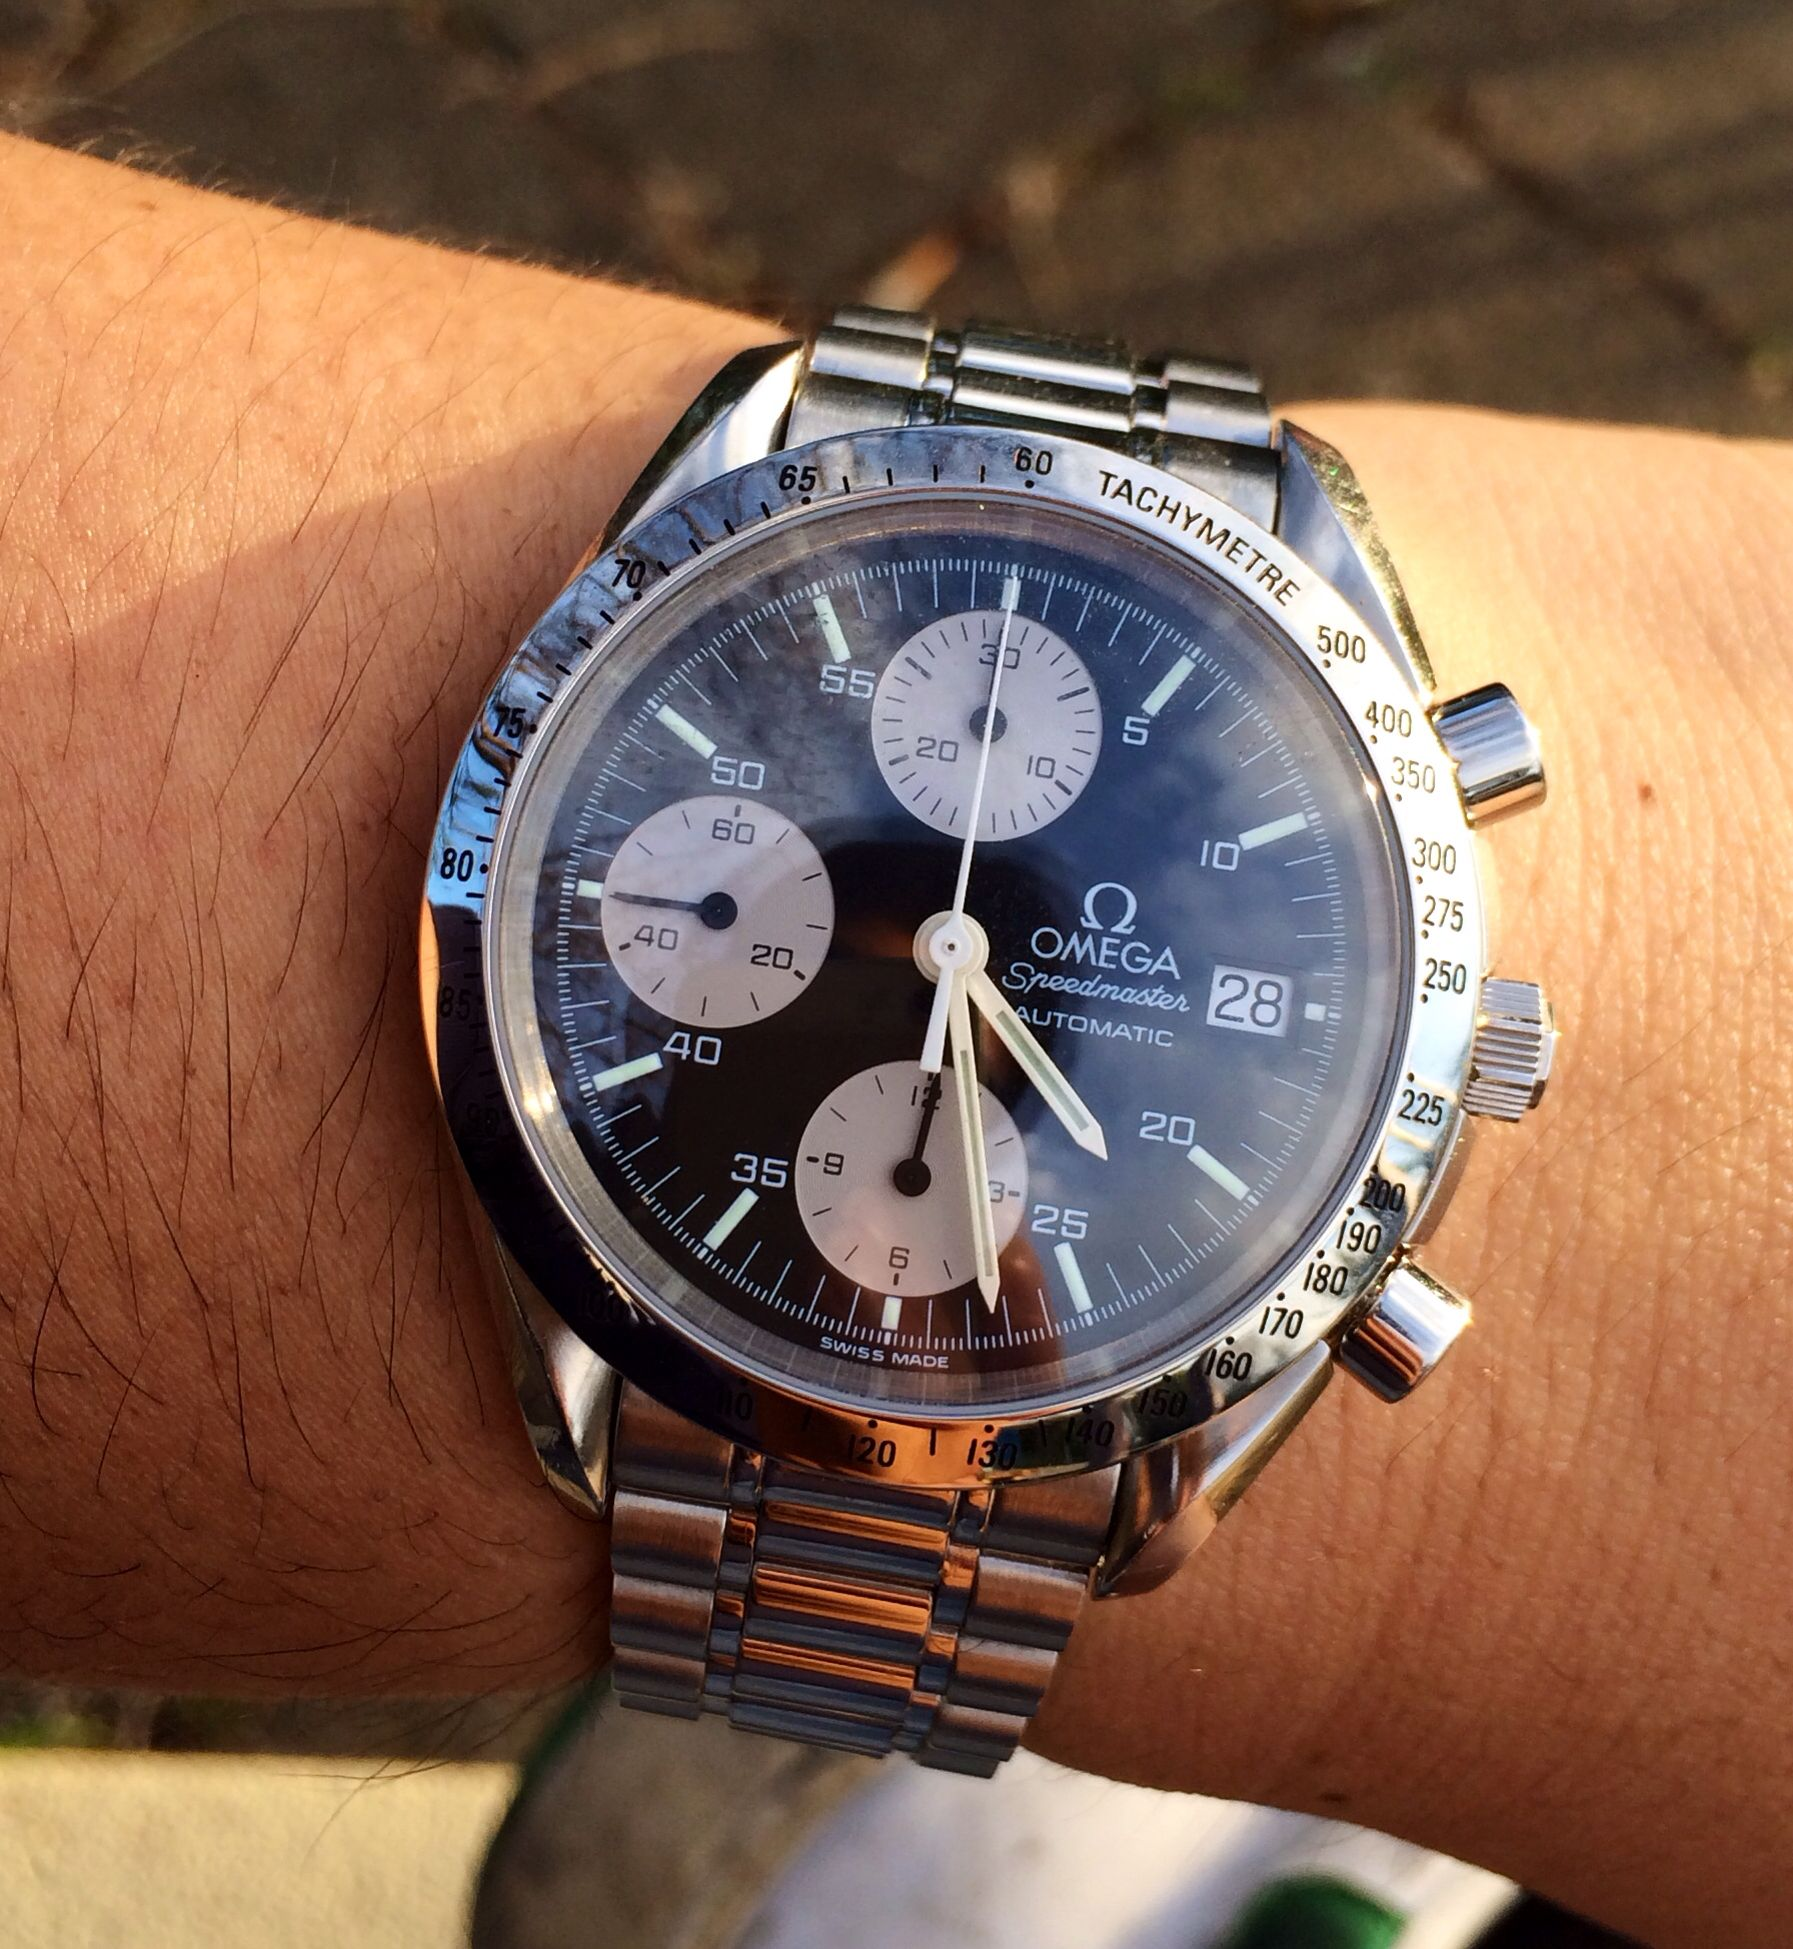 How to Date Omega Watches